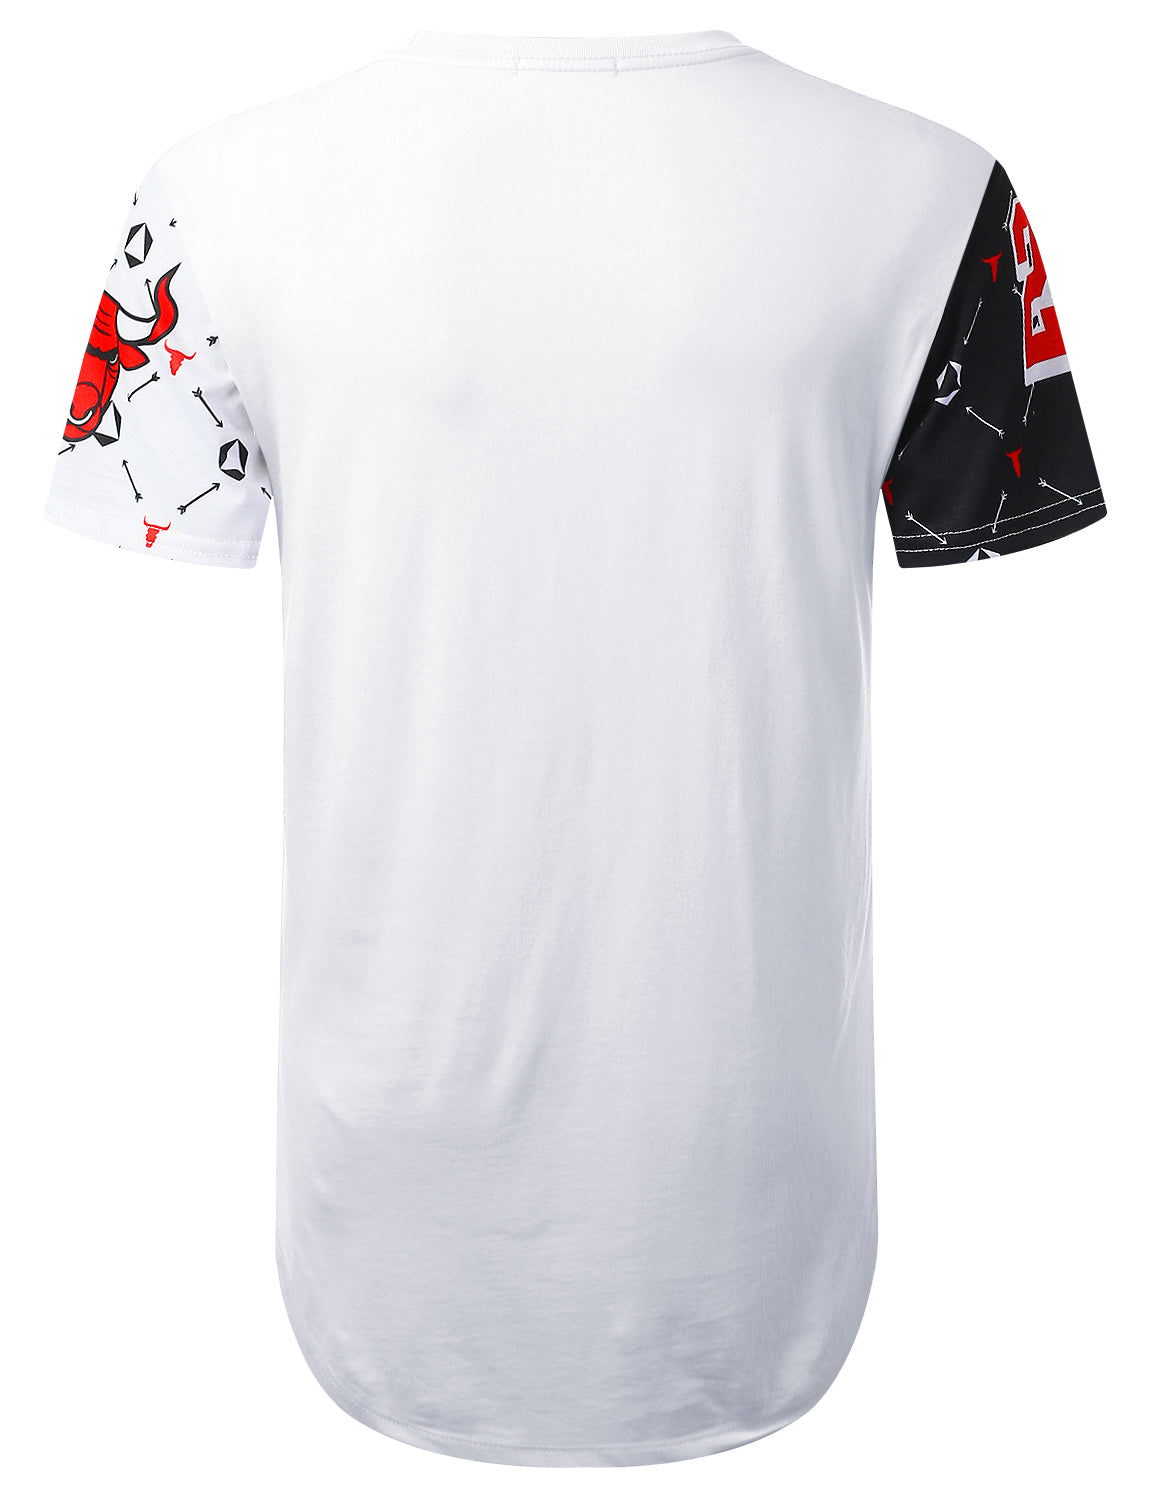 WHITE Diamond Bulls Graphic Longline T-shirt - URBANCREWS